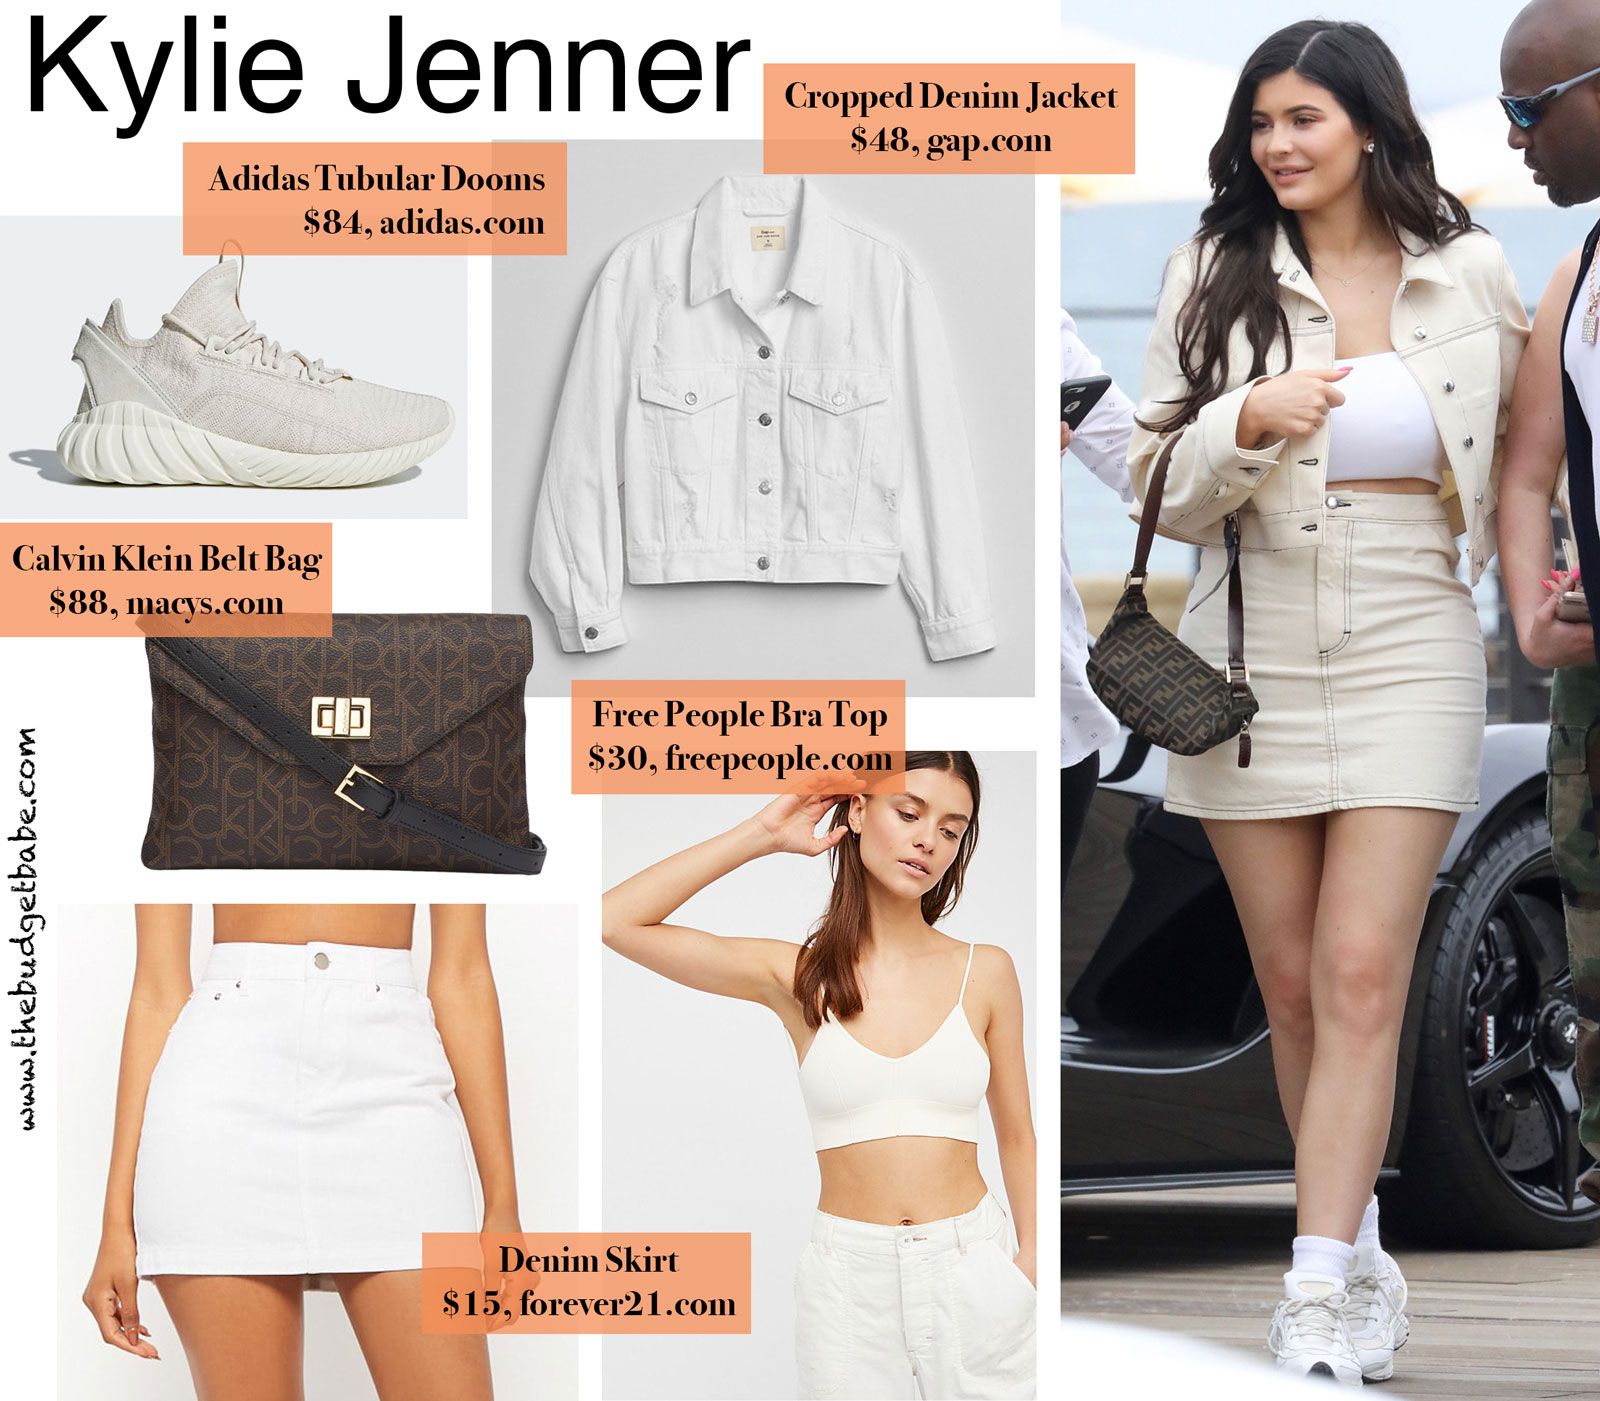 Kylie Jenner Denim Mini Skirt and Cropped Jacket Look for Less